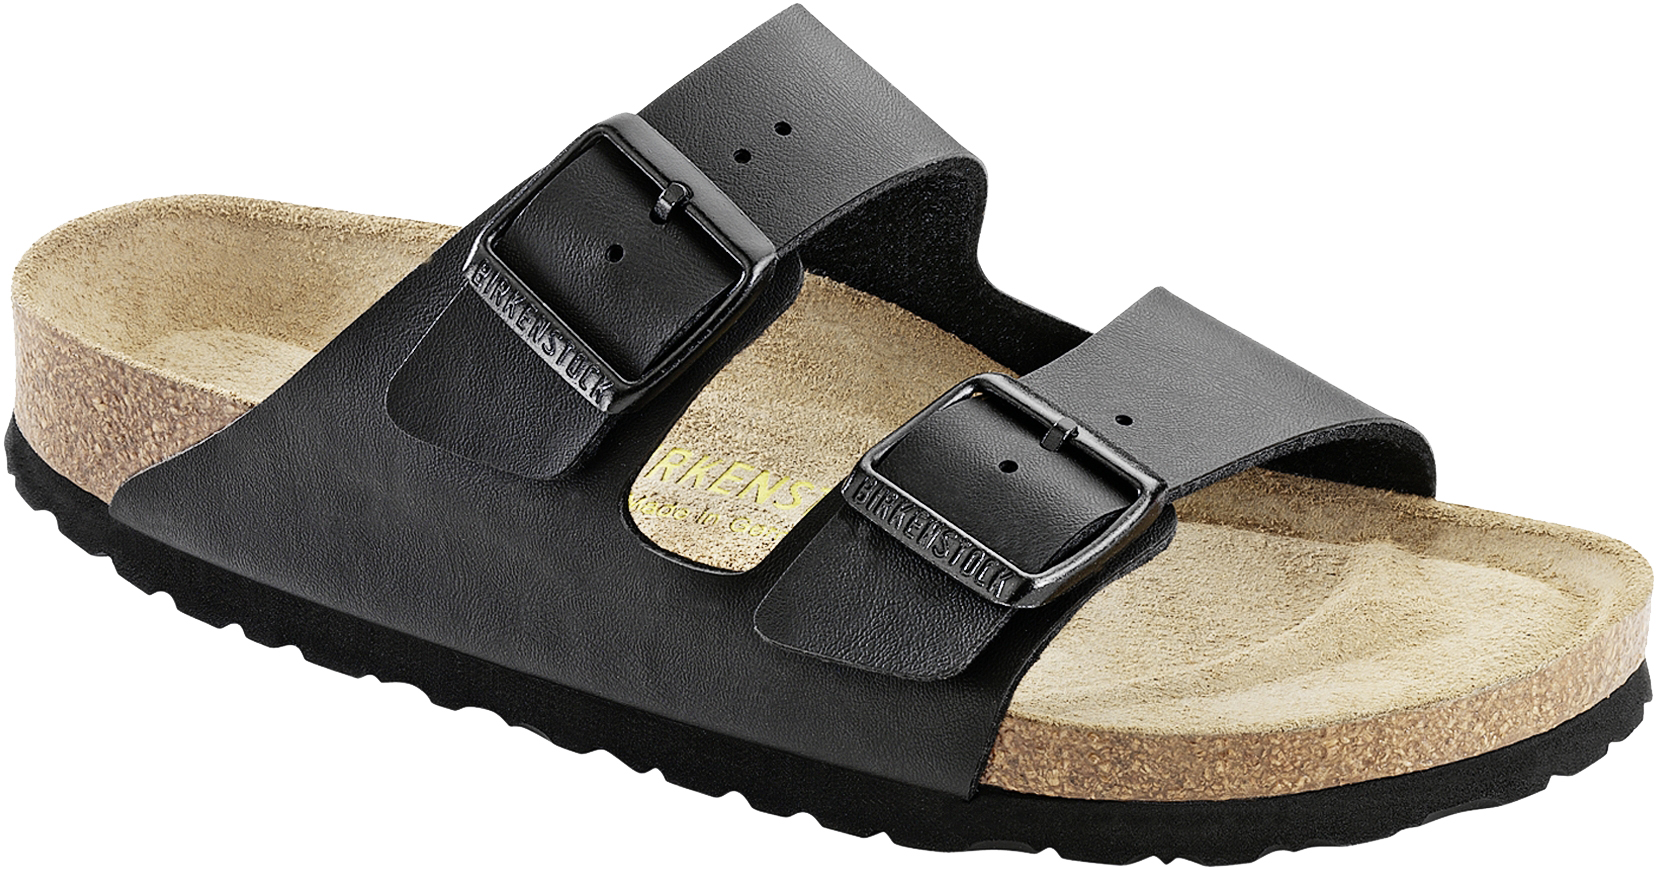 7b886176a76a1b Birkenstock Arizona Soft Footbed Sandals - Unisex